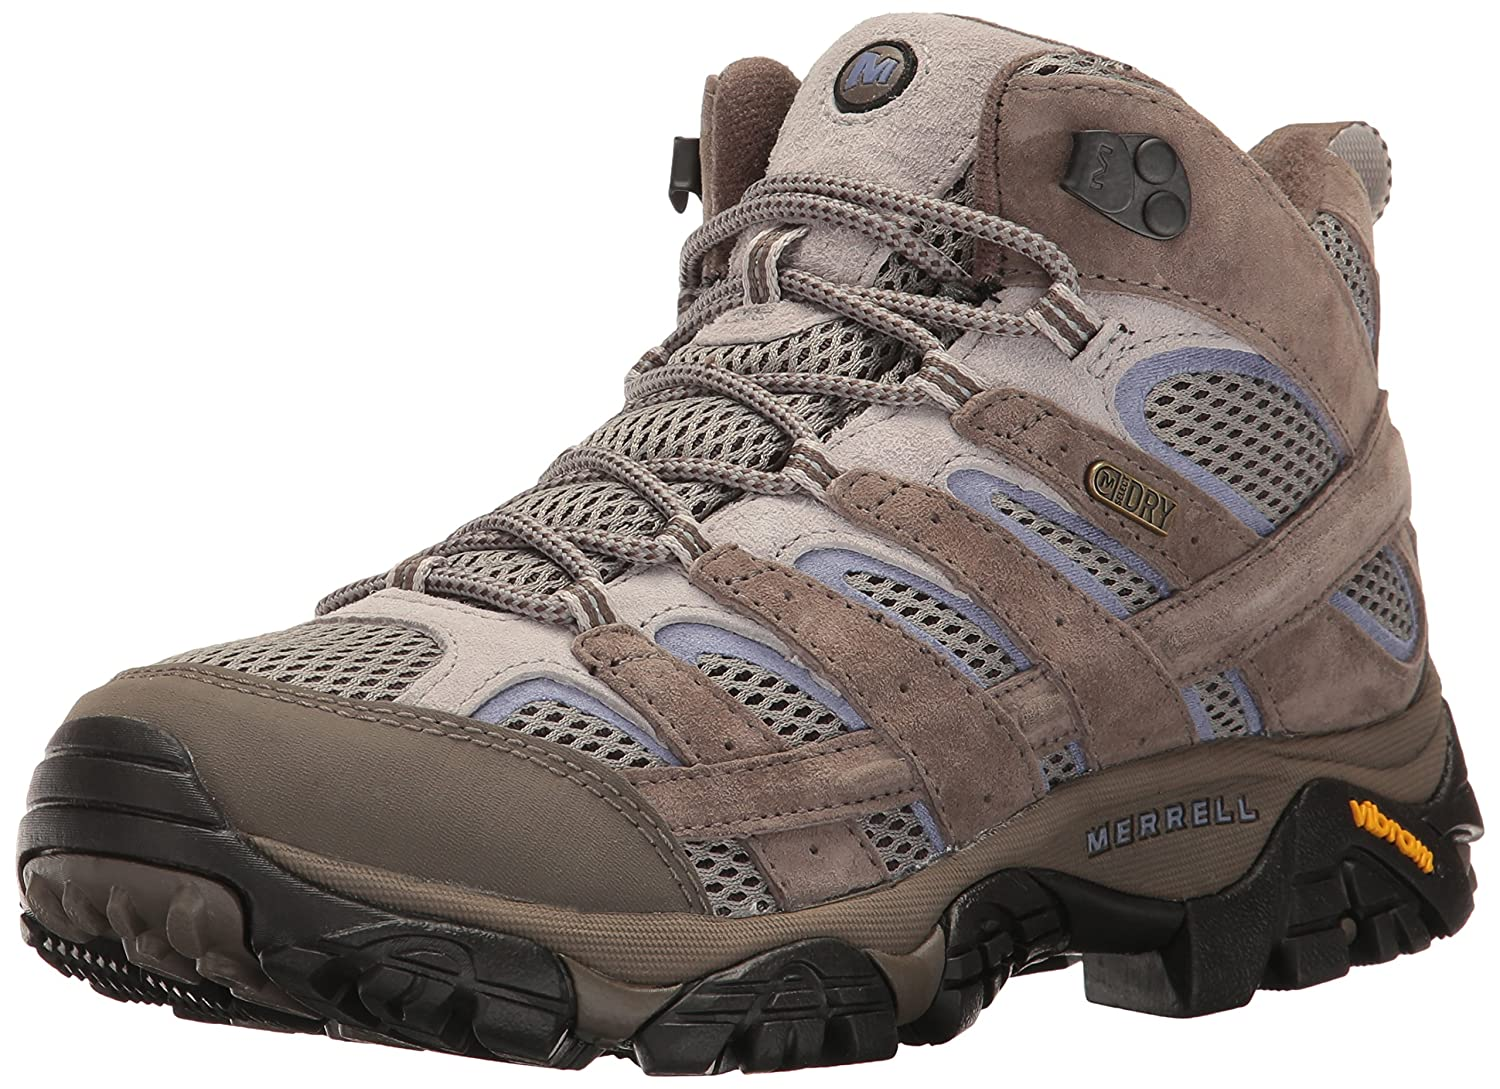 Merrell Women's Moab 2 Mid Waterproof Hiking Boot B01N5FH4V7 7.5 B(M) US|Falcon